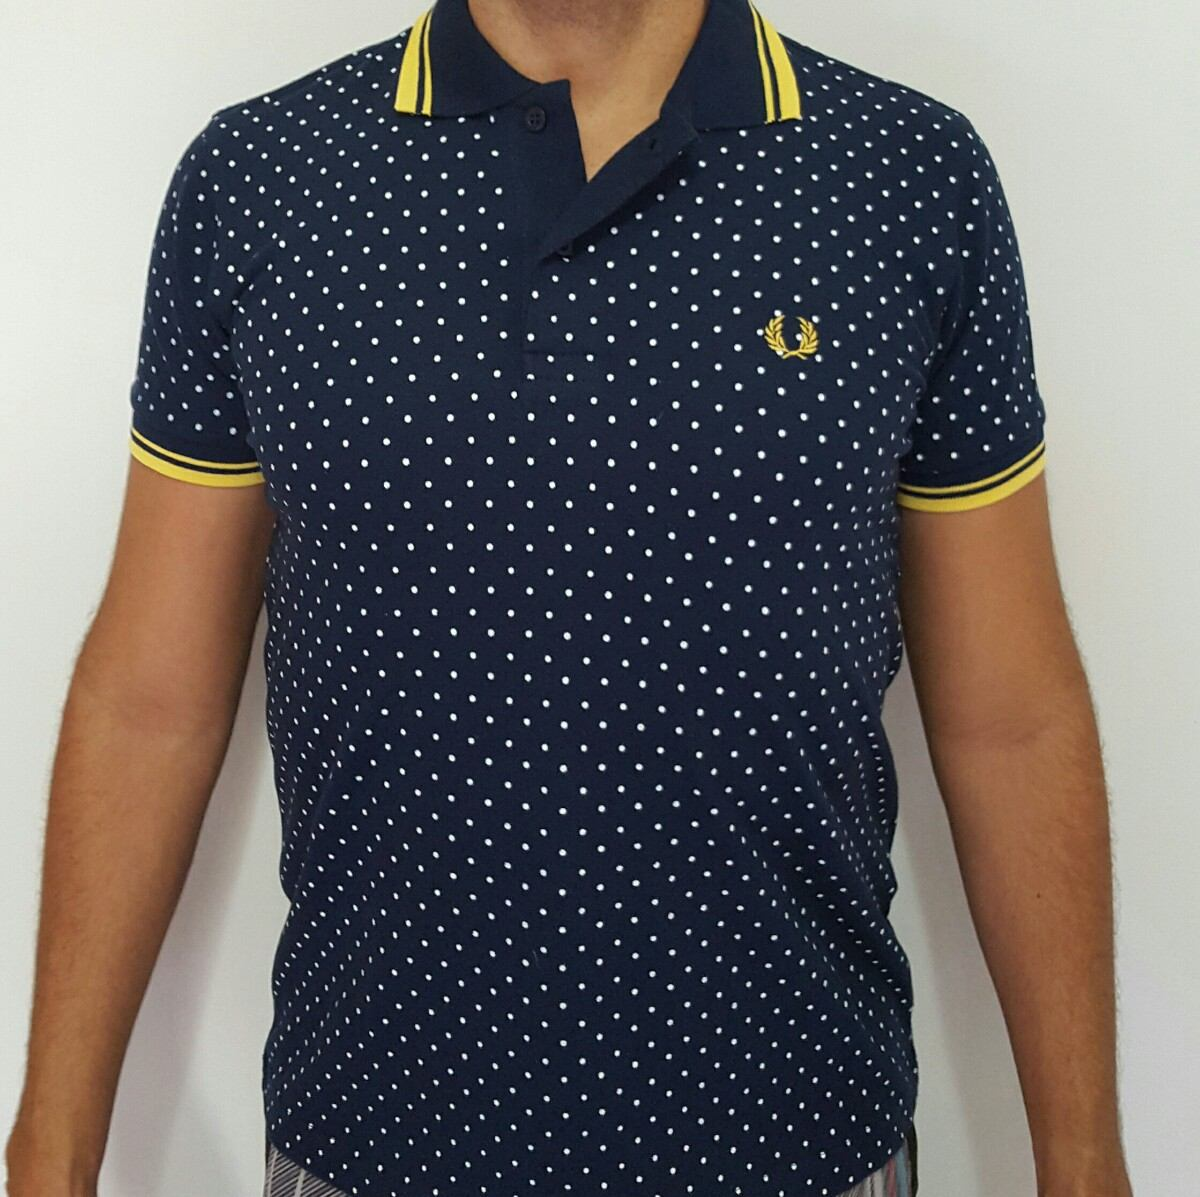 camisa gola polo fred perry. Carregando zoom. eaf8504220de3